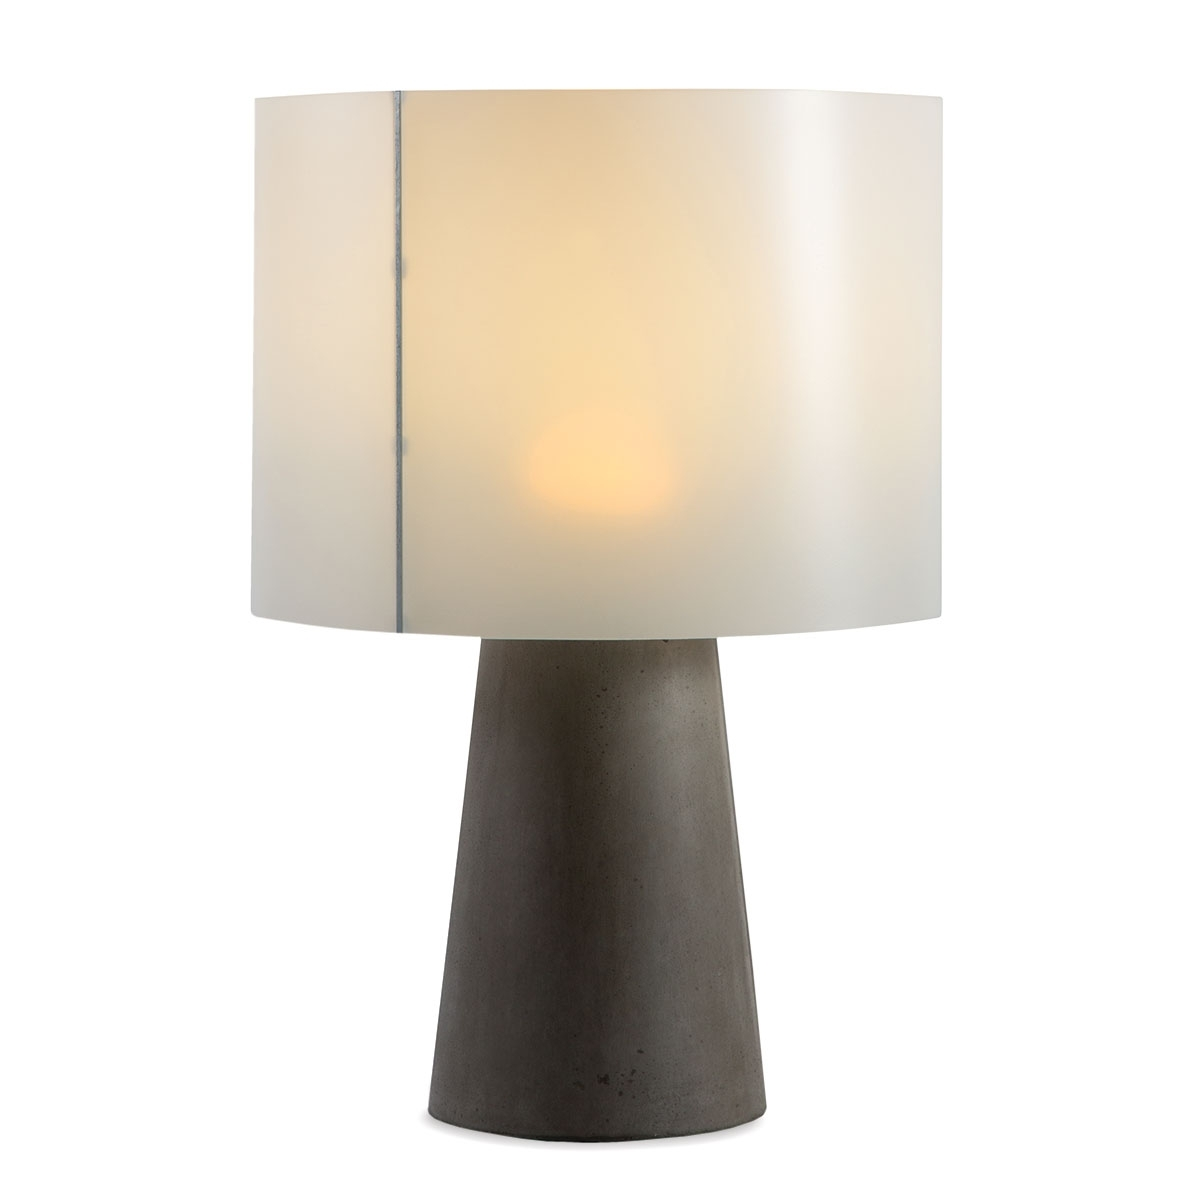 Inda Outdoor Cordless Concrete Table Lamp Dark Gray in Current Cordless Living Room Table Lamps